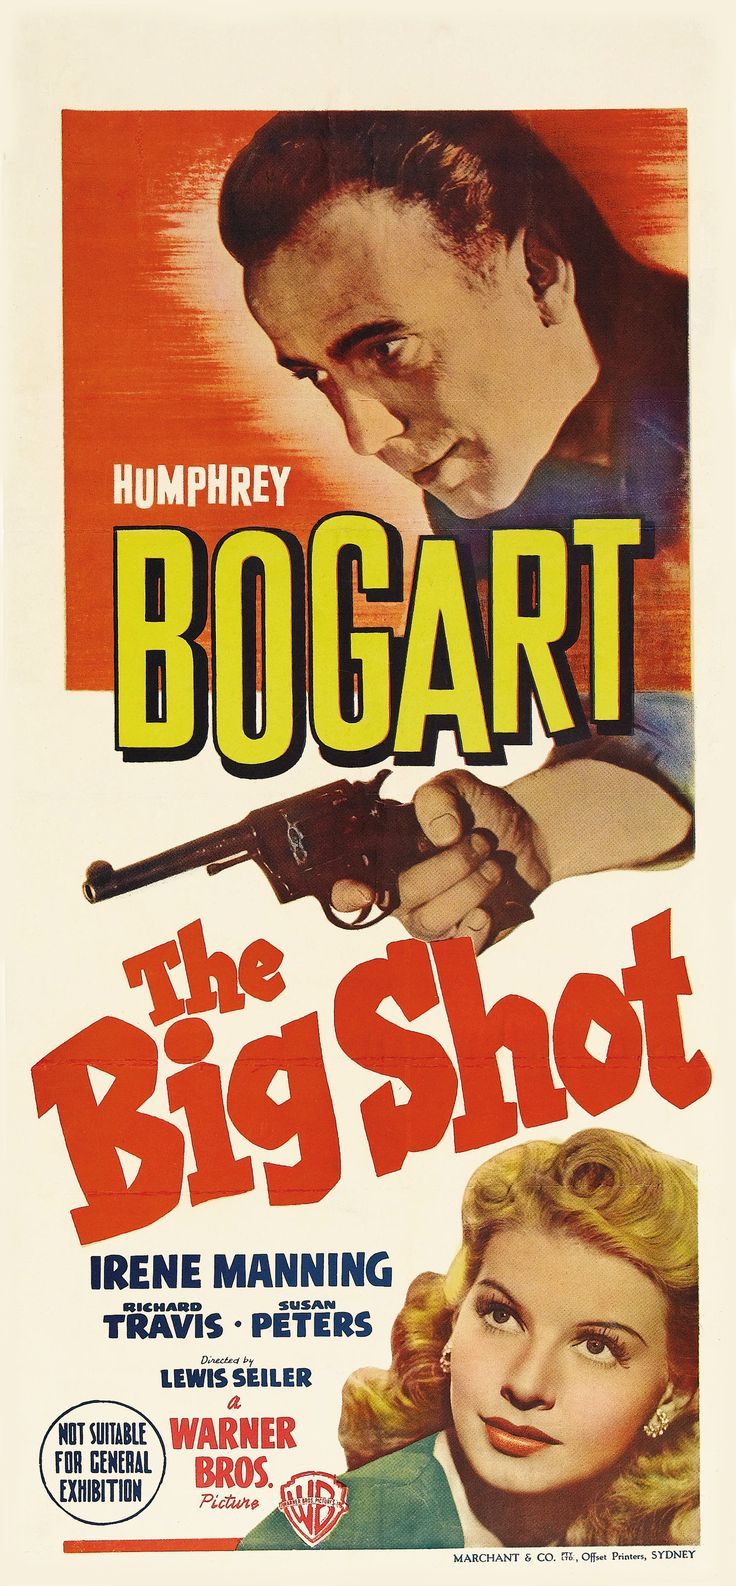 The Big Shot (1942) Starring Humphrey Bogart, Irene Manning, Richard Travis and Susan Peters Movie Poster https://www.youtube.com/user/PopcornCinemaShow